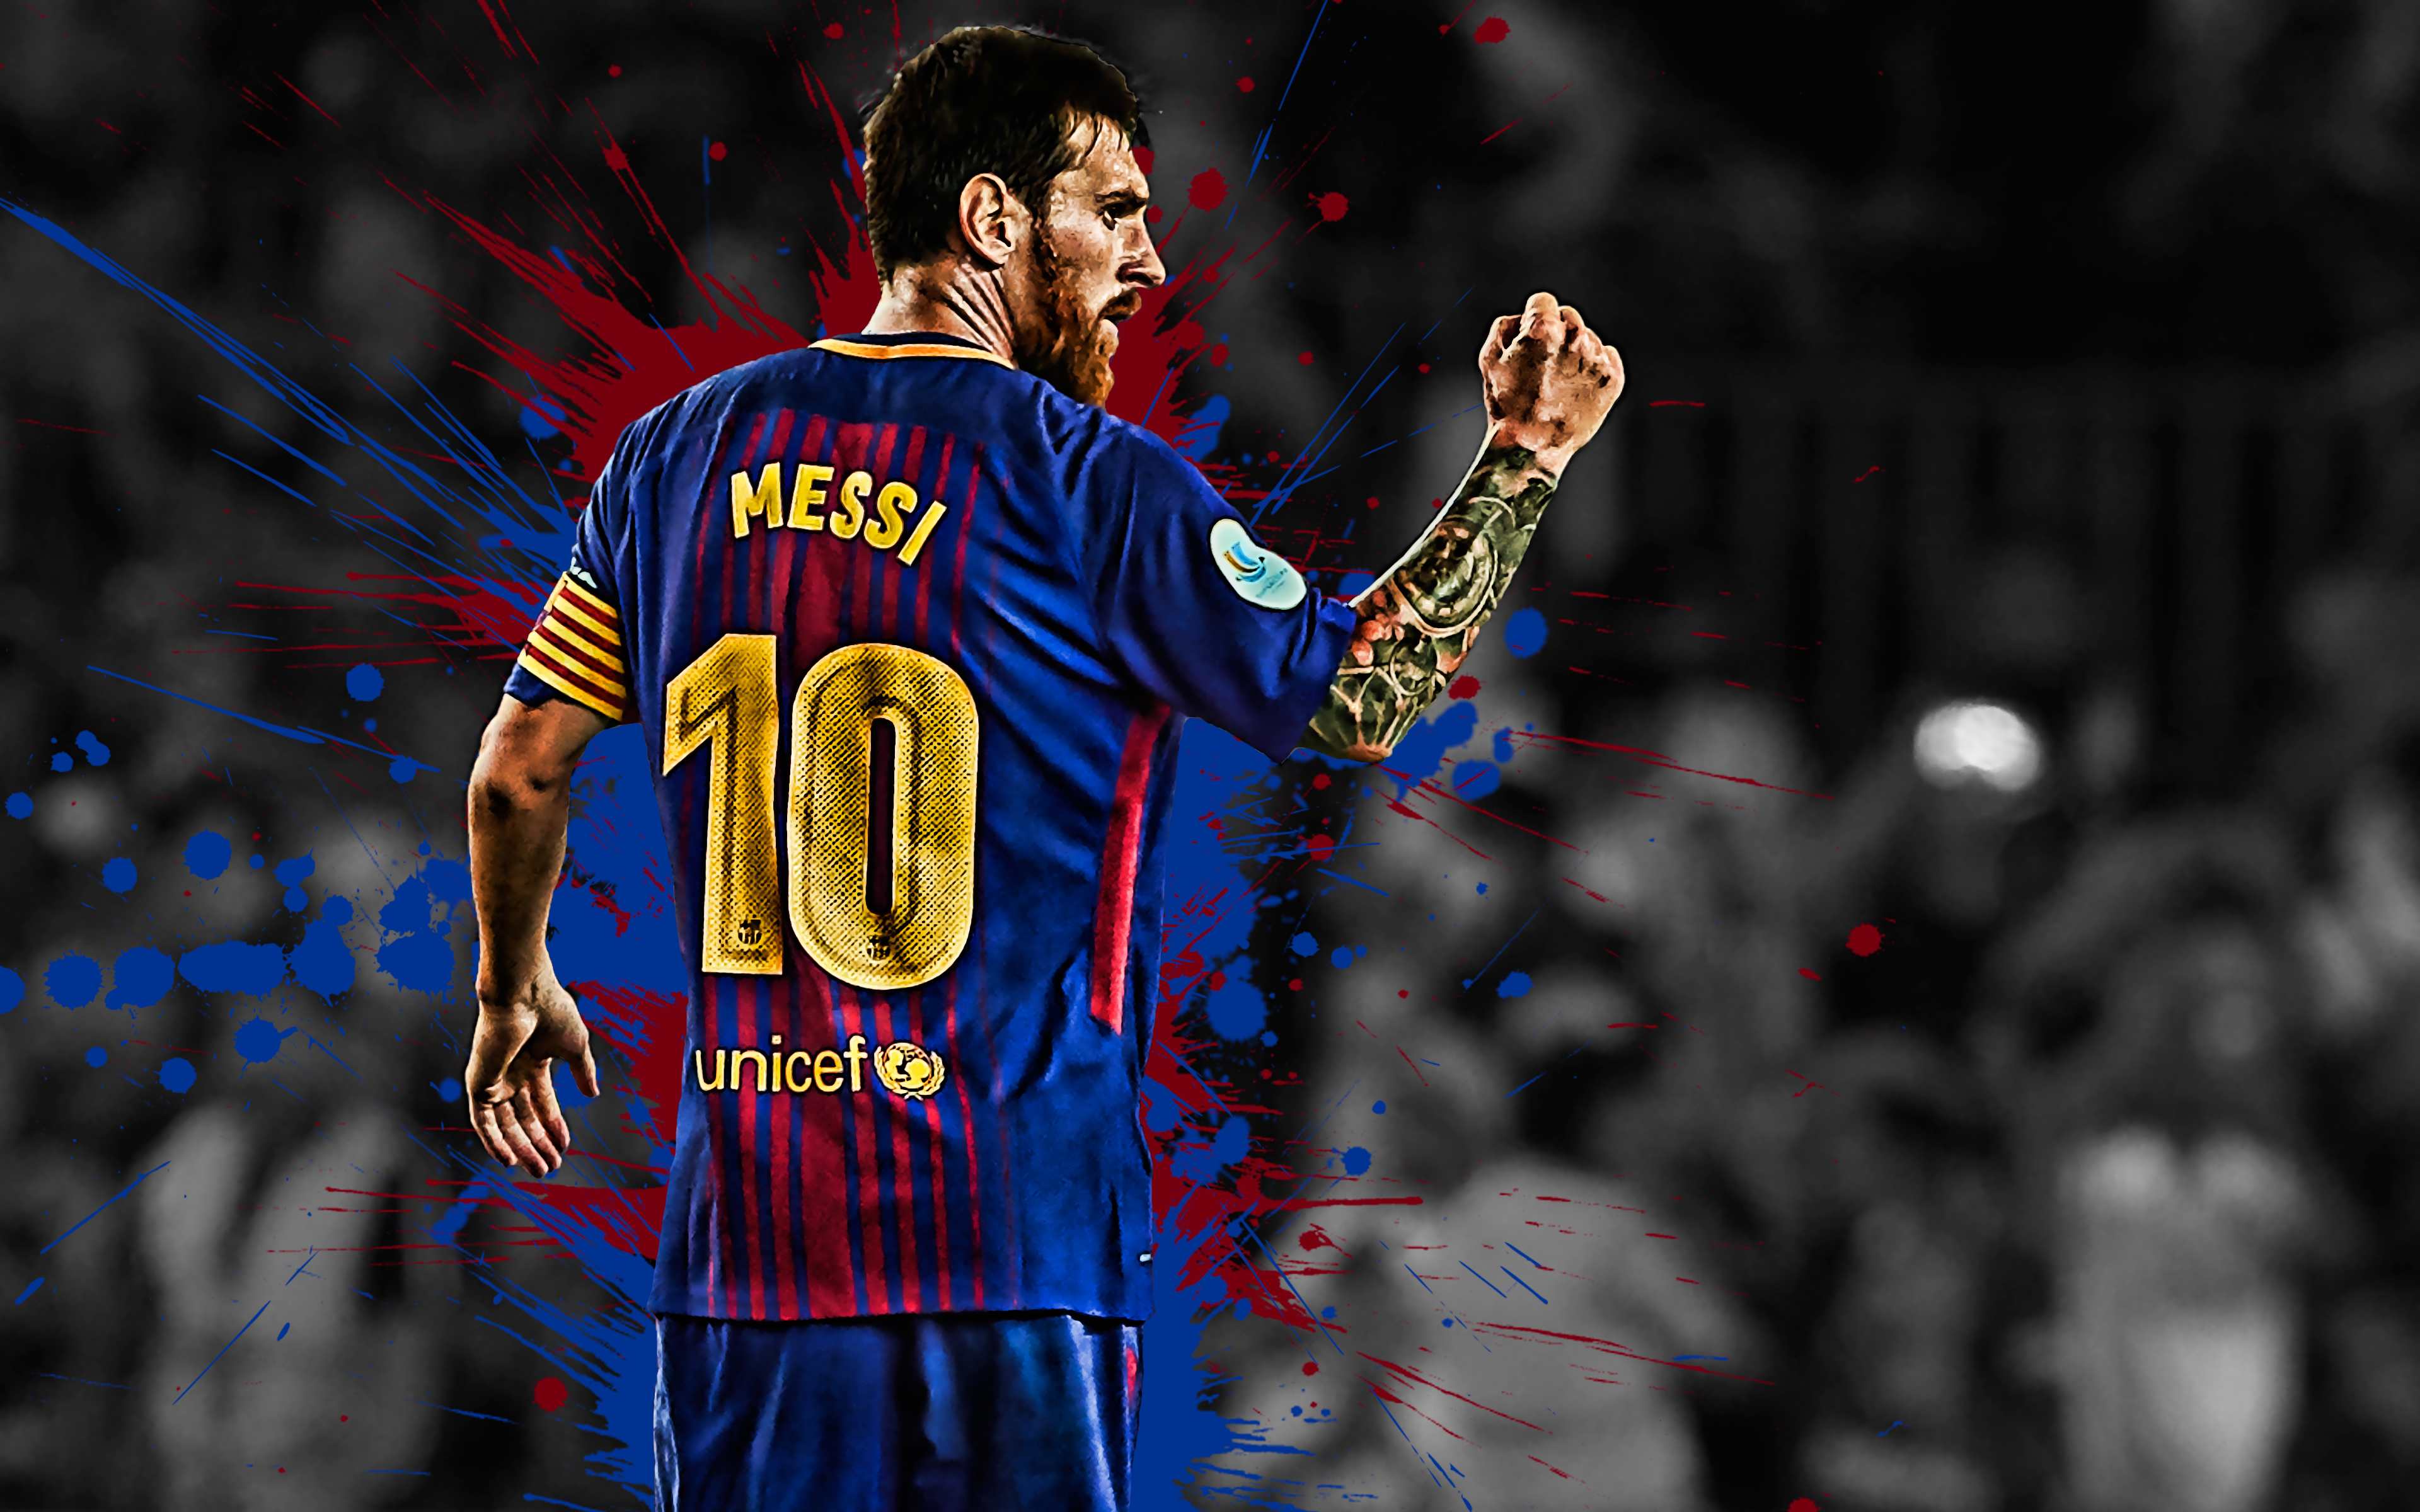 Lionel Messi 4k Ultra HD Wallpaper Background Image 3840x2400 3840x2400